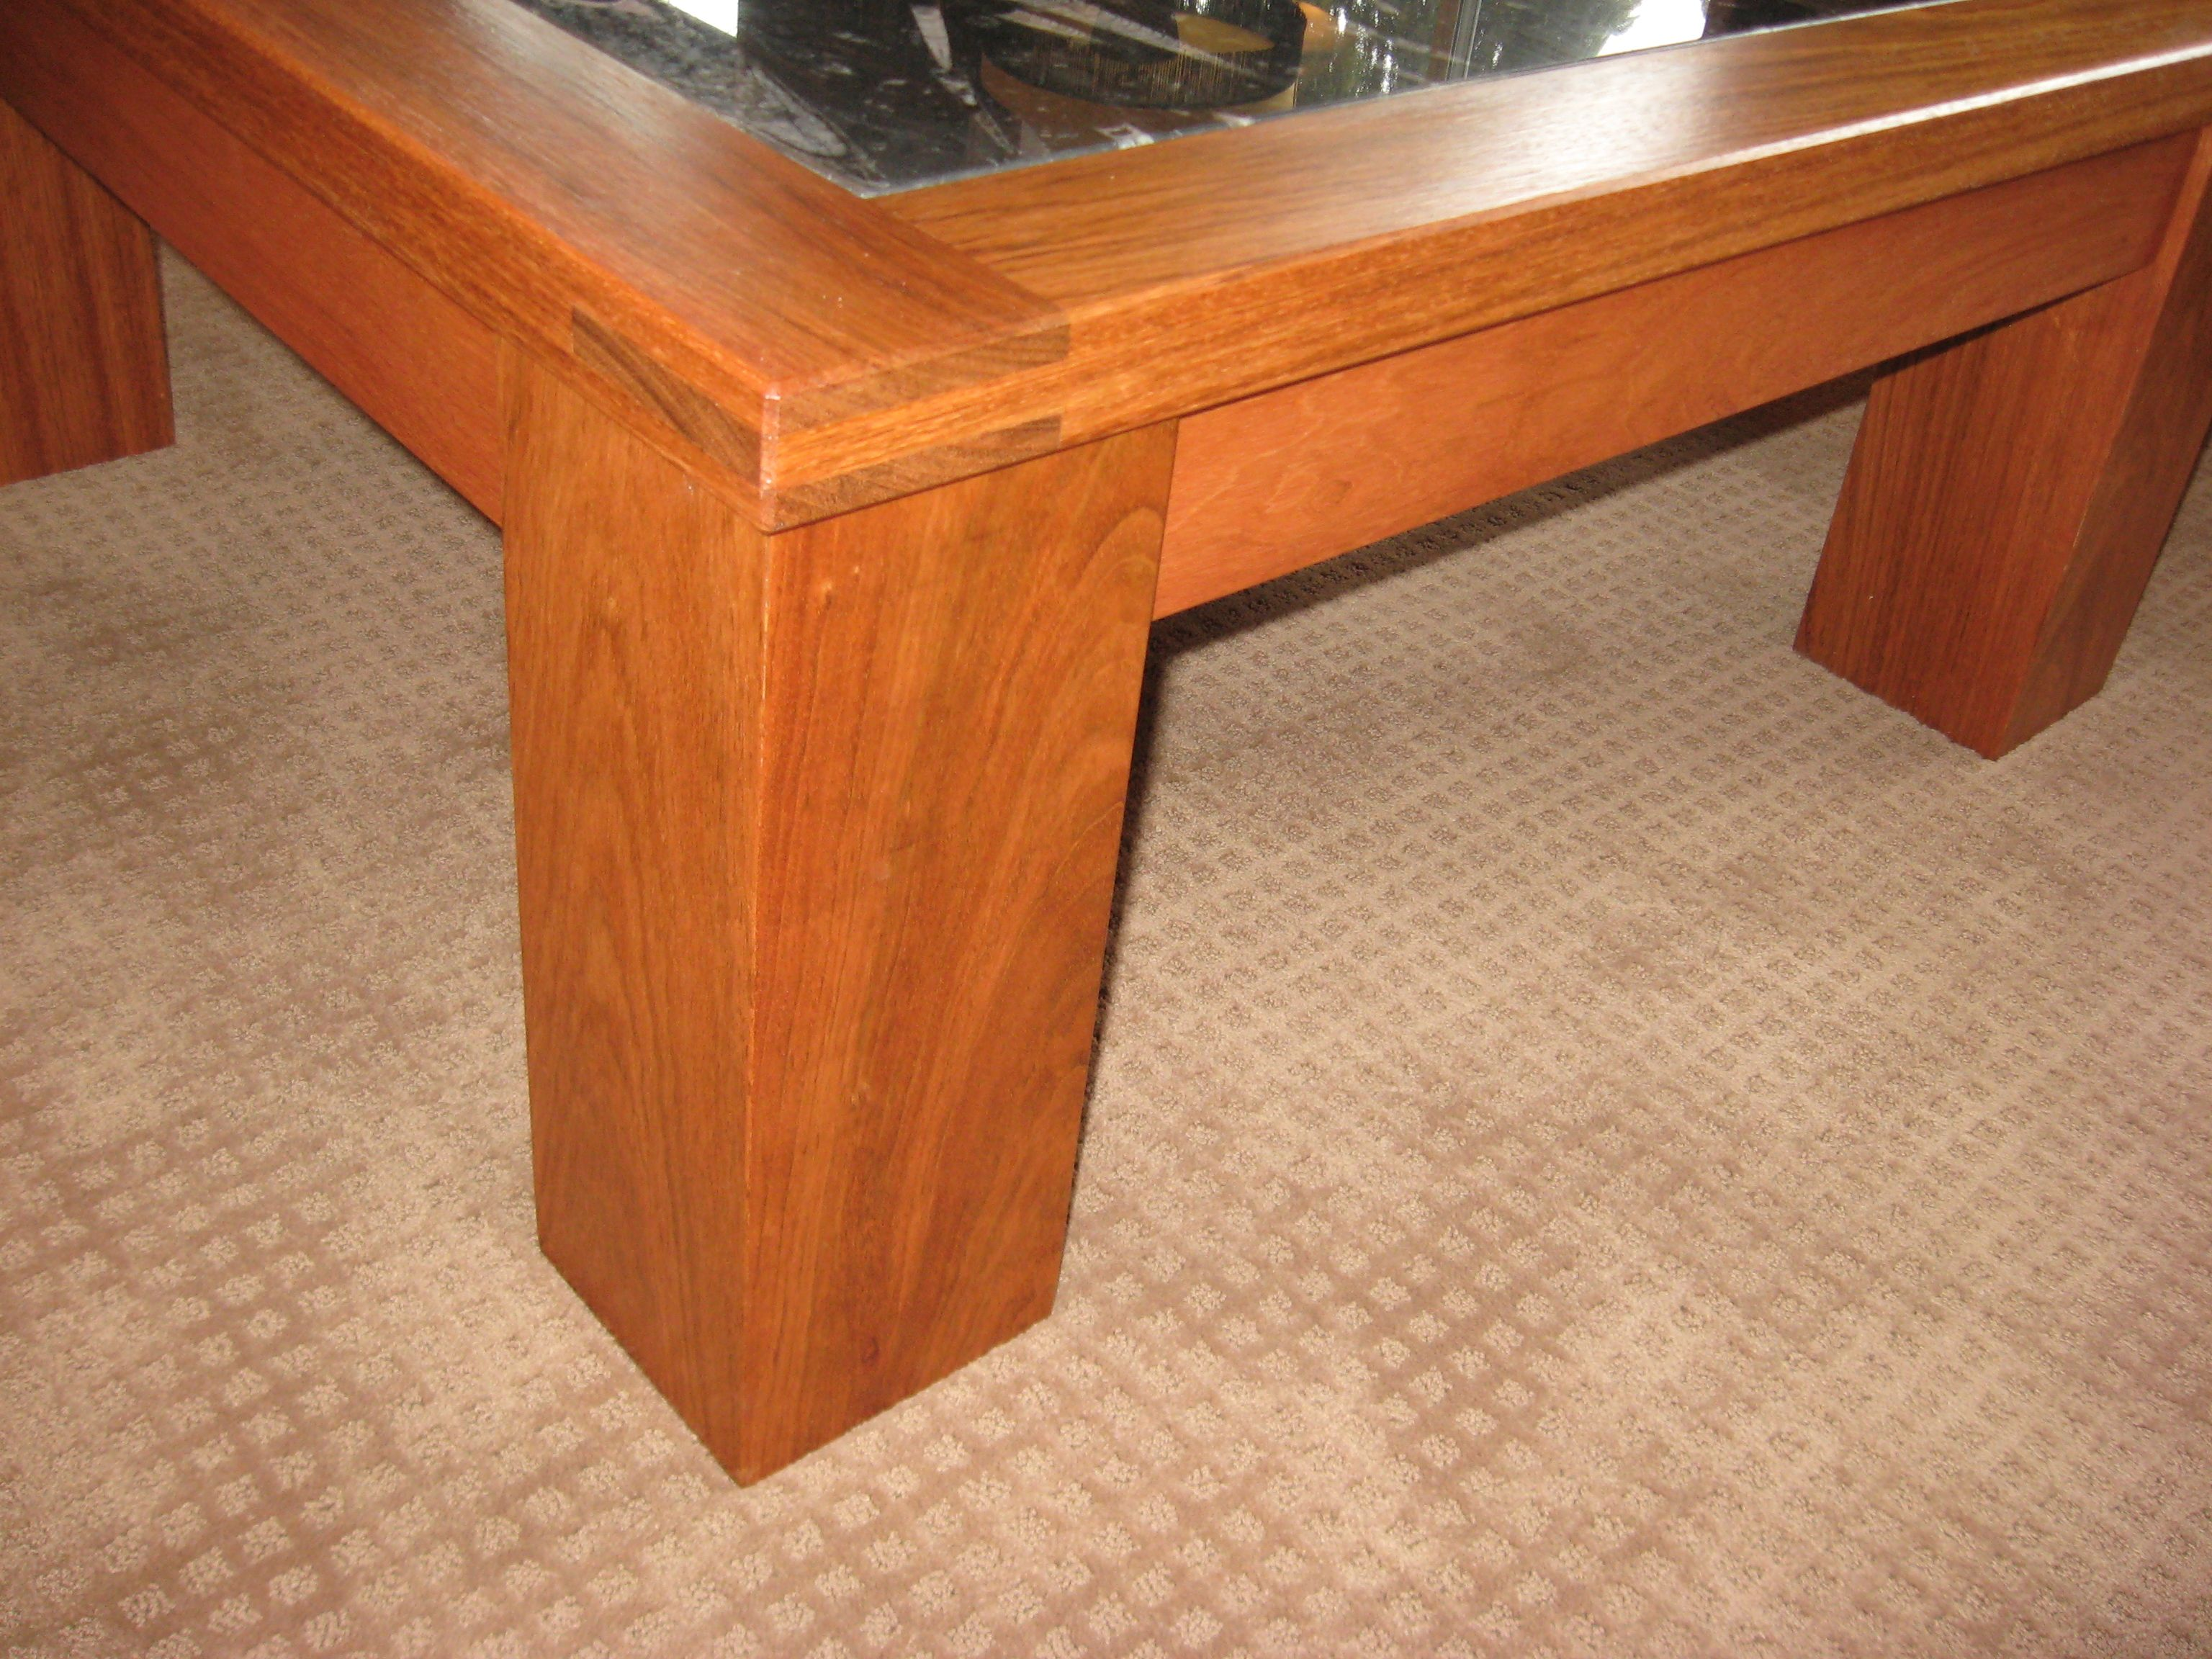 a87e6ca7498 Jatoba wood coffee table- mortise   tenon joint close up.